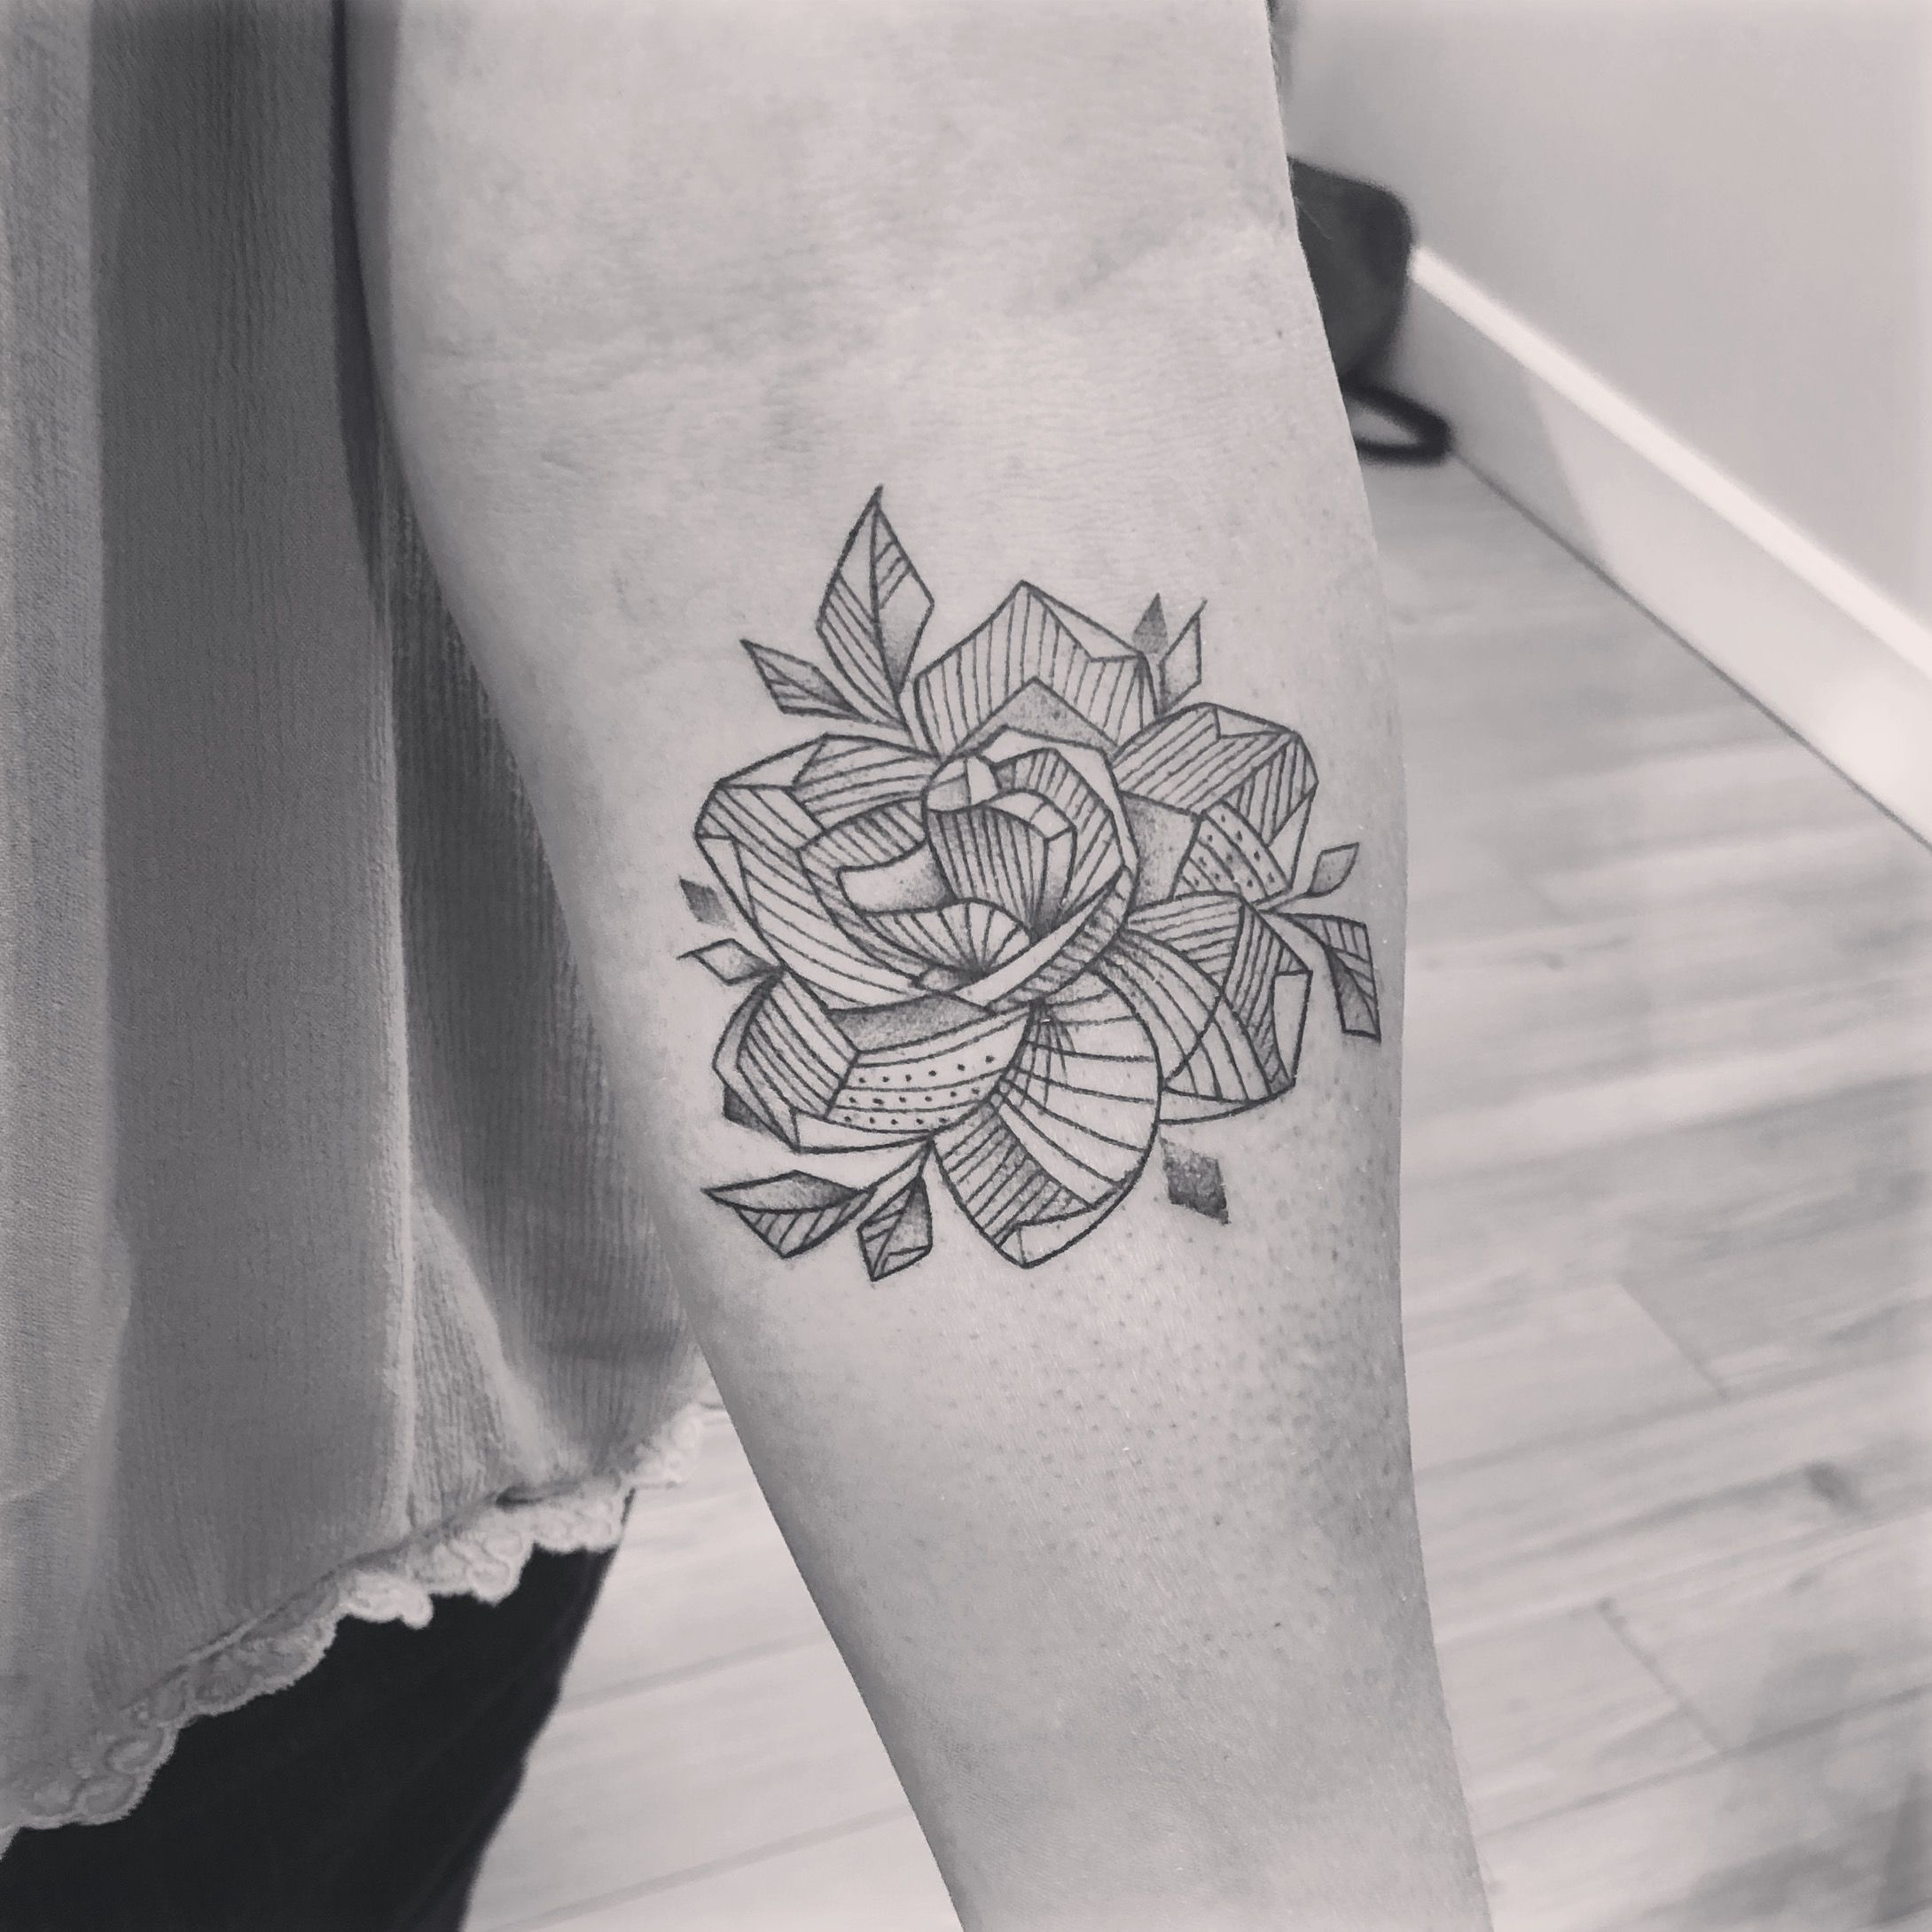 My Gardenia Tattoo Modern Flowertattoos Gardenia Gardenia Tattoo Tattoos Flower Tattoos